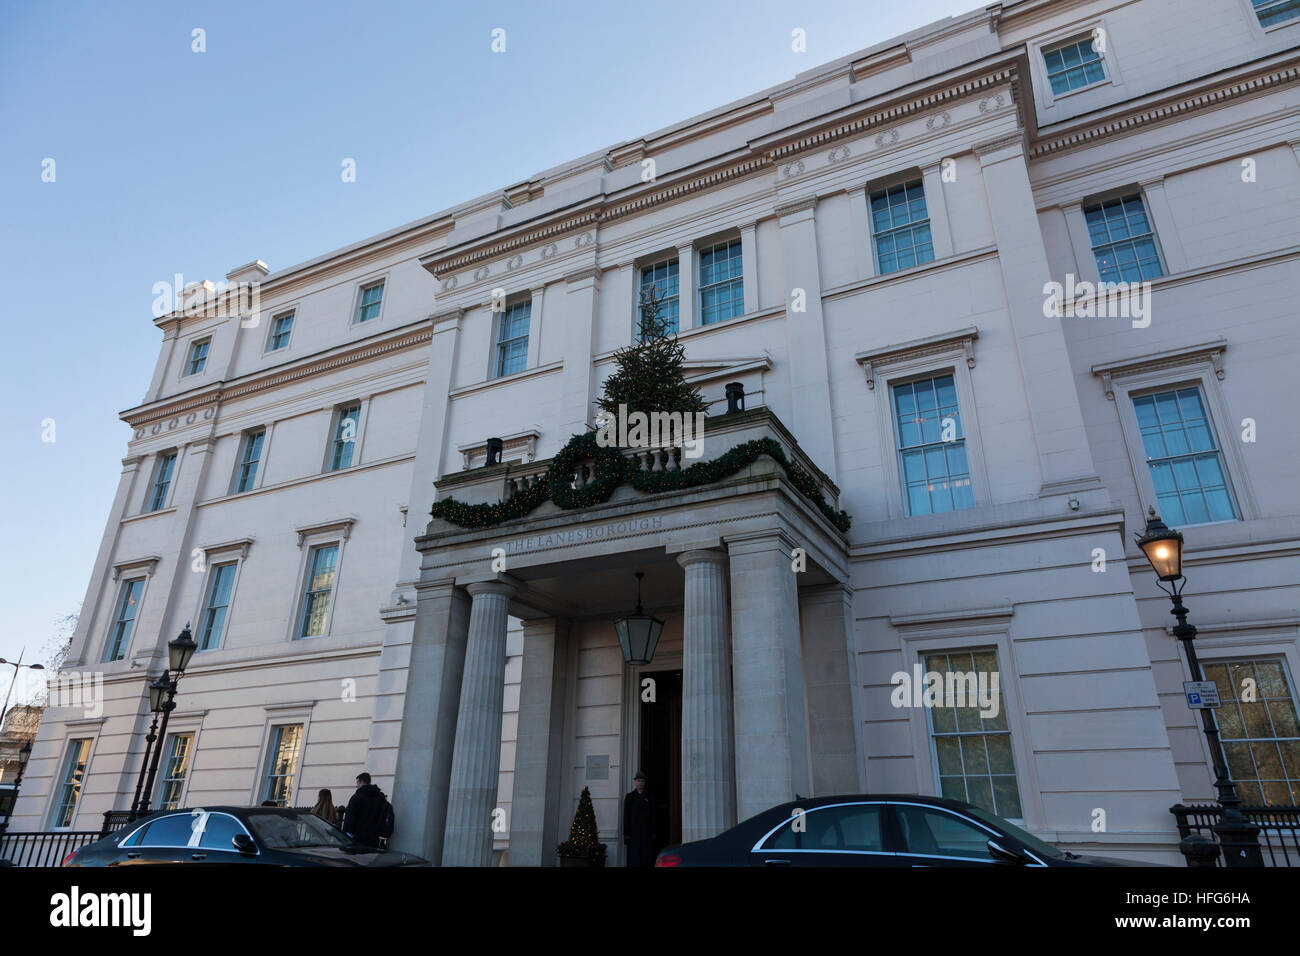 The Lanesborough Hotel on the corner of Knightsbridge and Hyde Park Corner - Stock Image